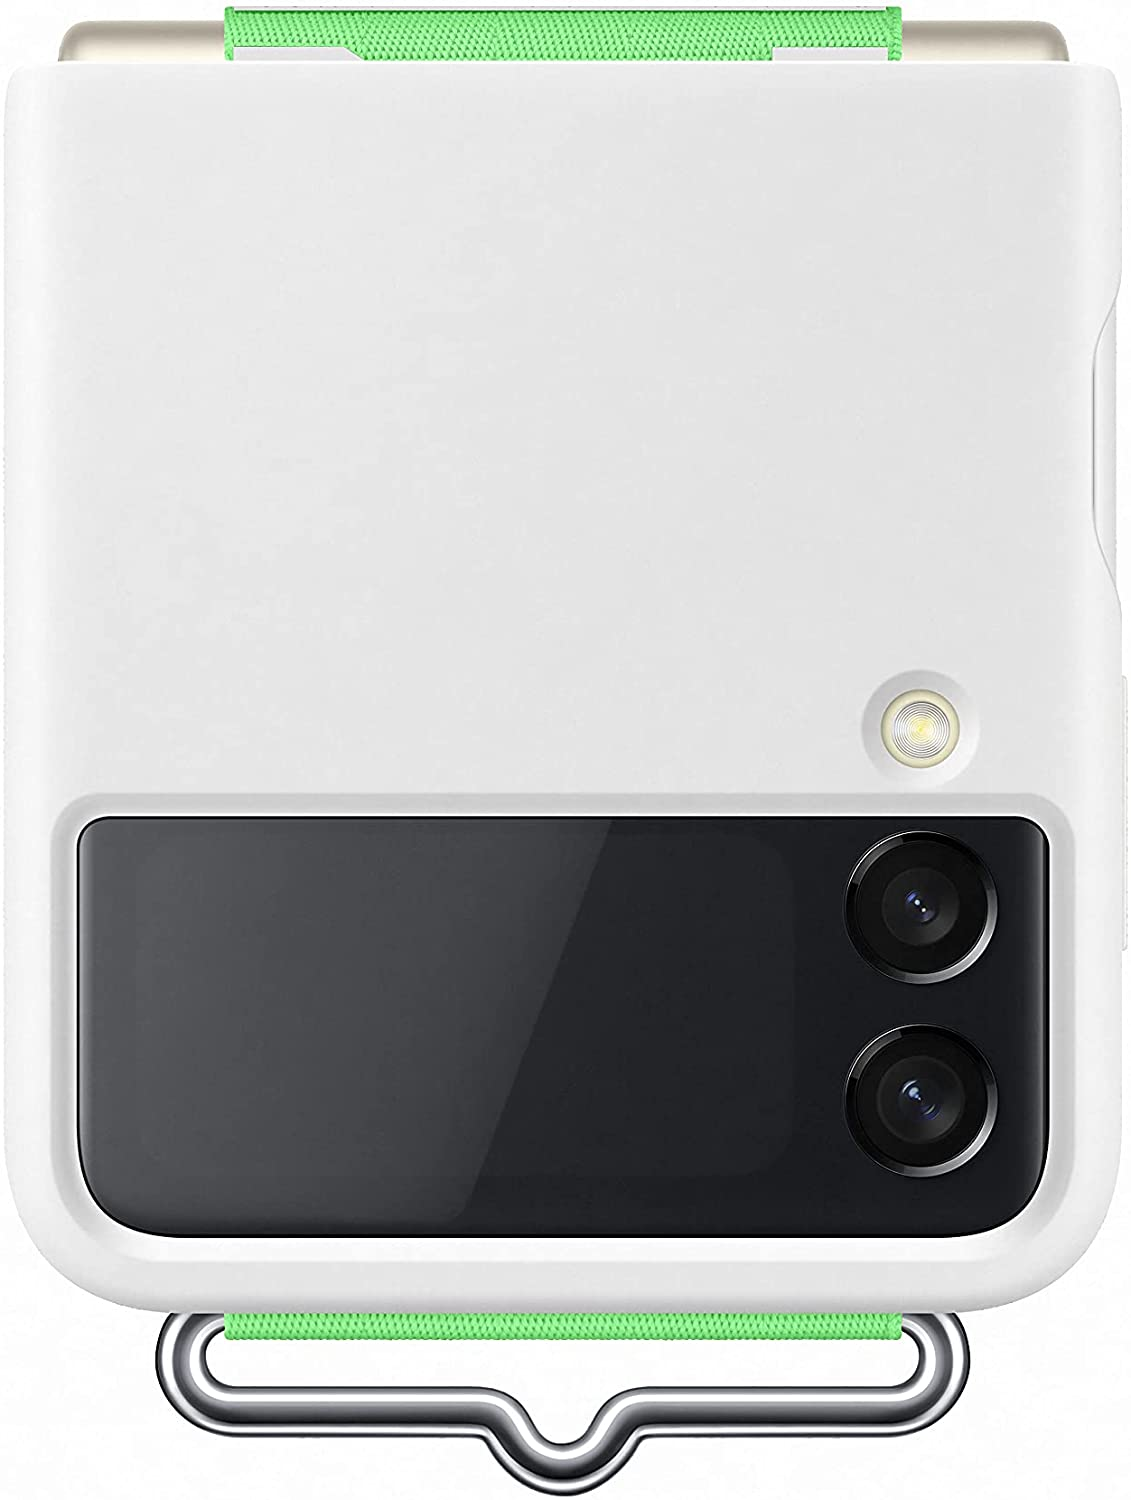 Samsung Galaxy Z Flip3 Silicone Cover with Strap - Official Samsung Case - White